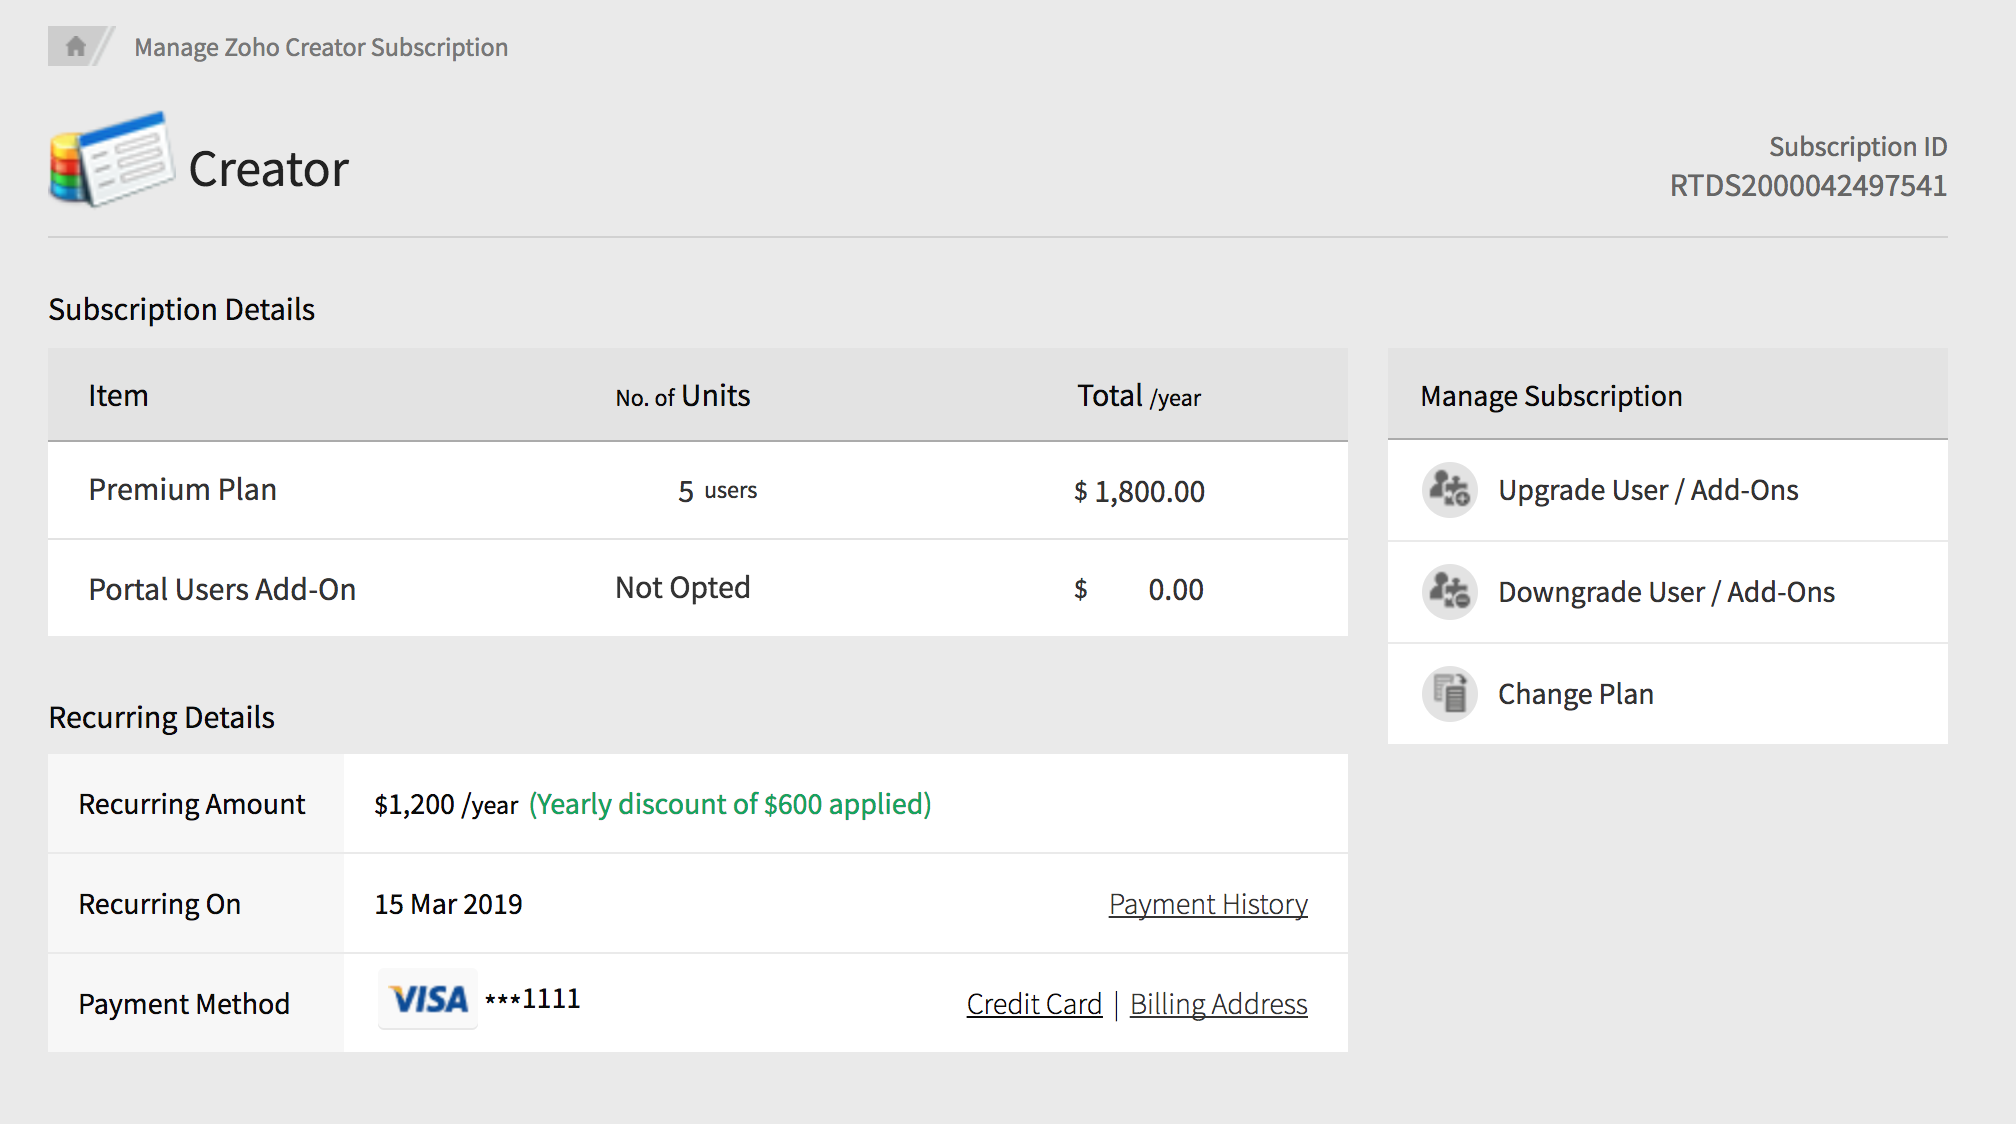 View account subscription details | Zoho